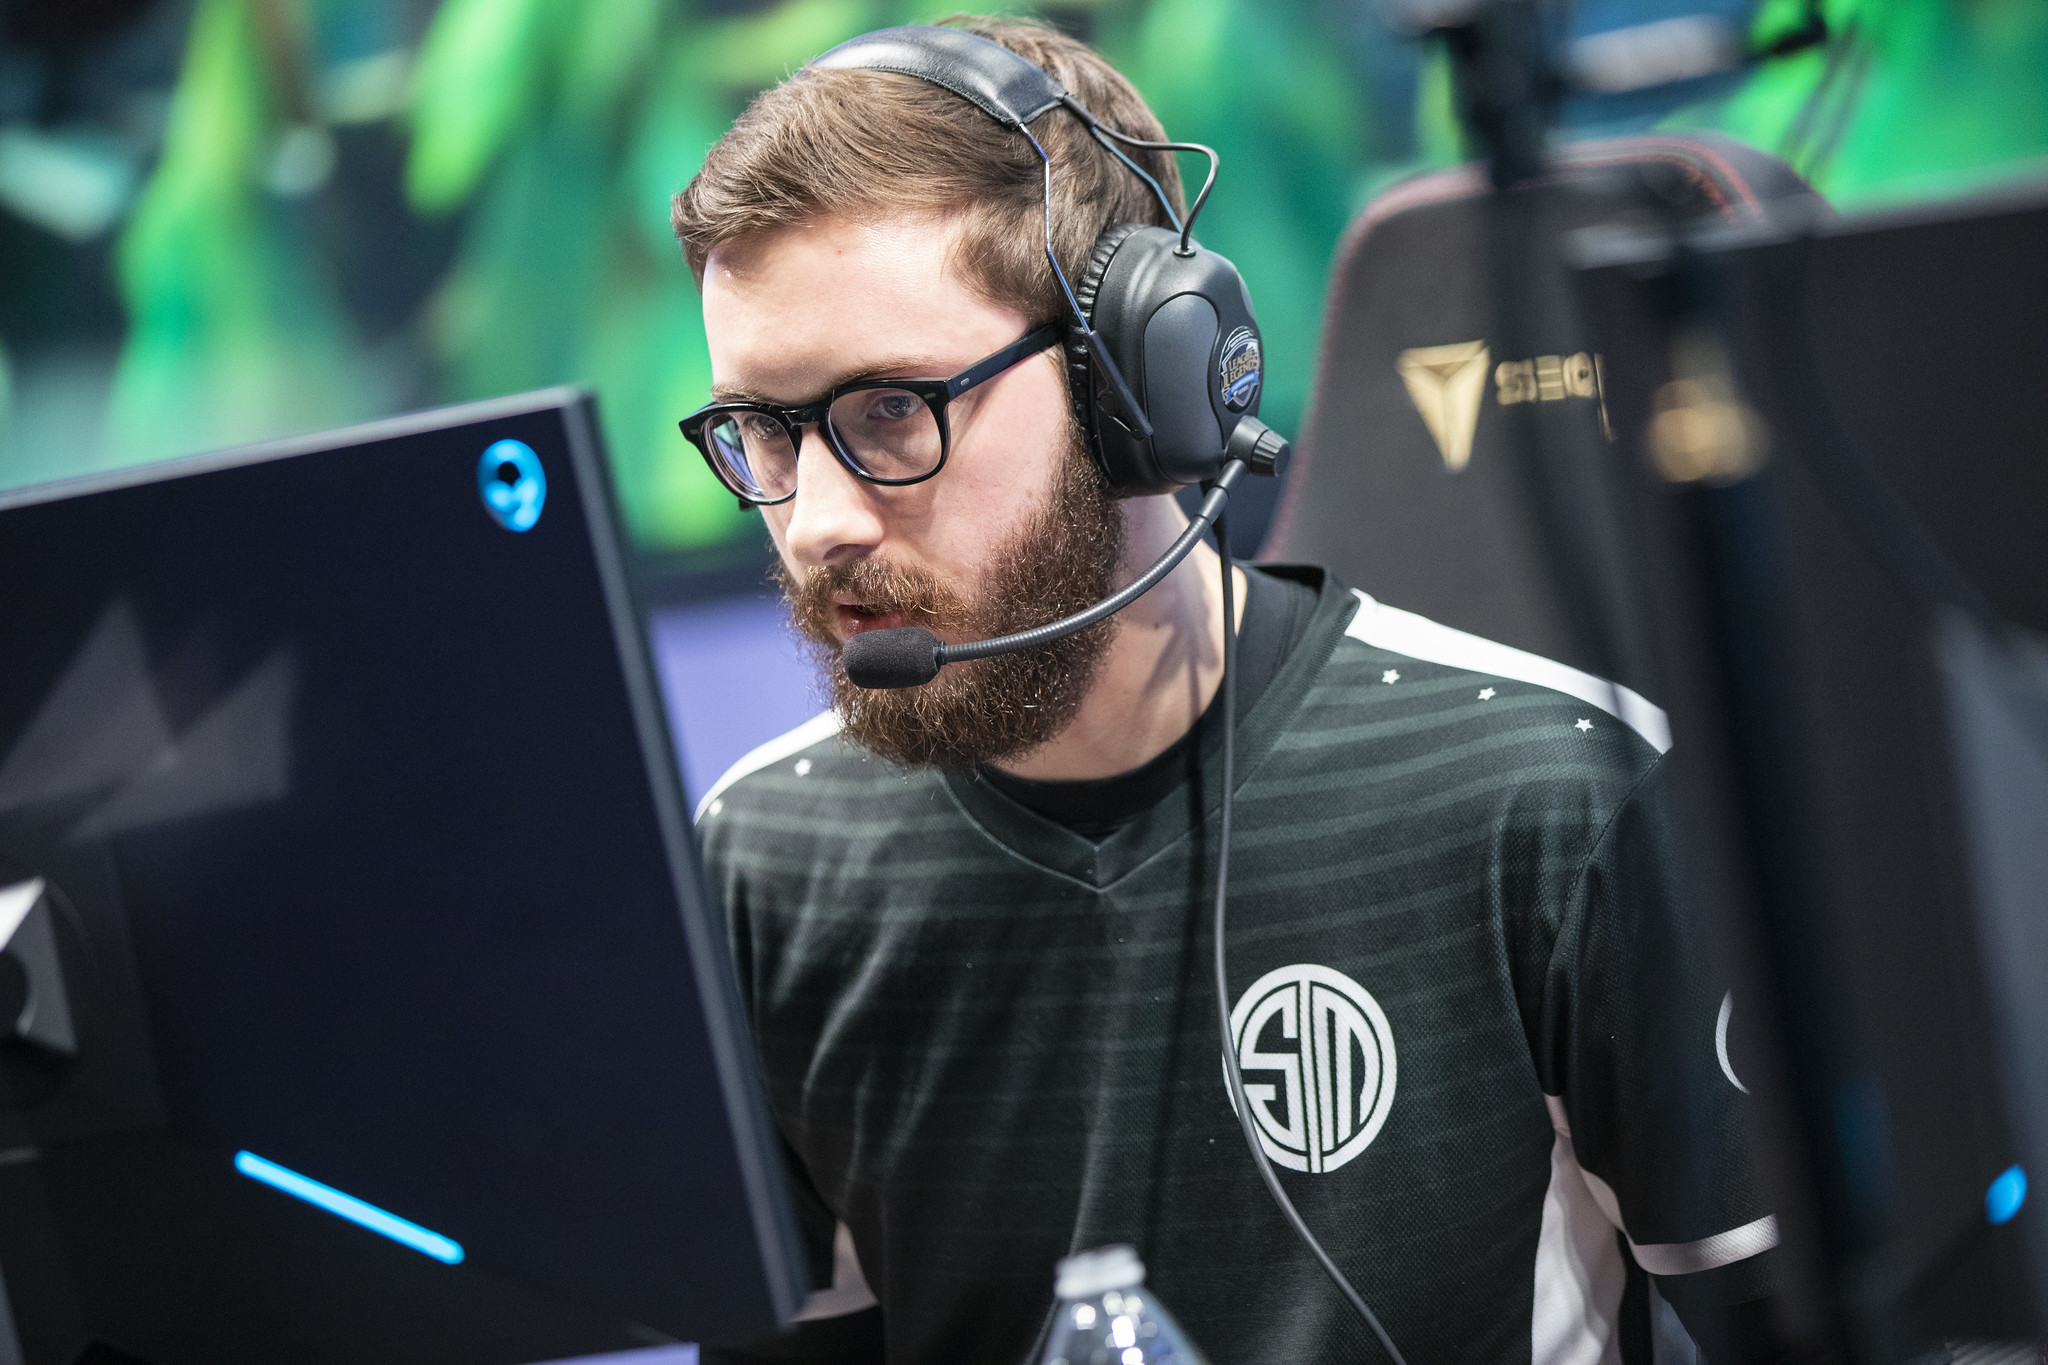 Bjergsen playing for TSM during LCS Spring 2019